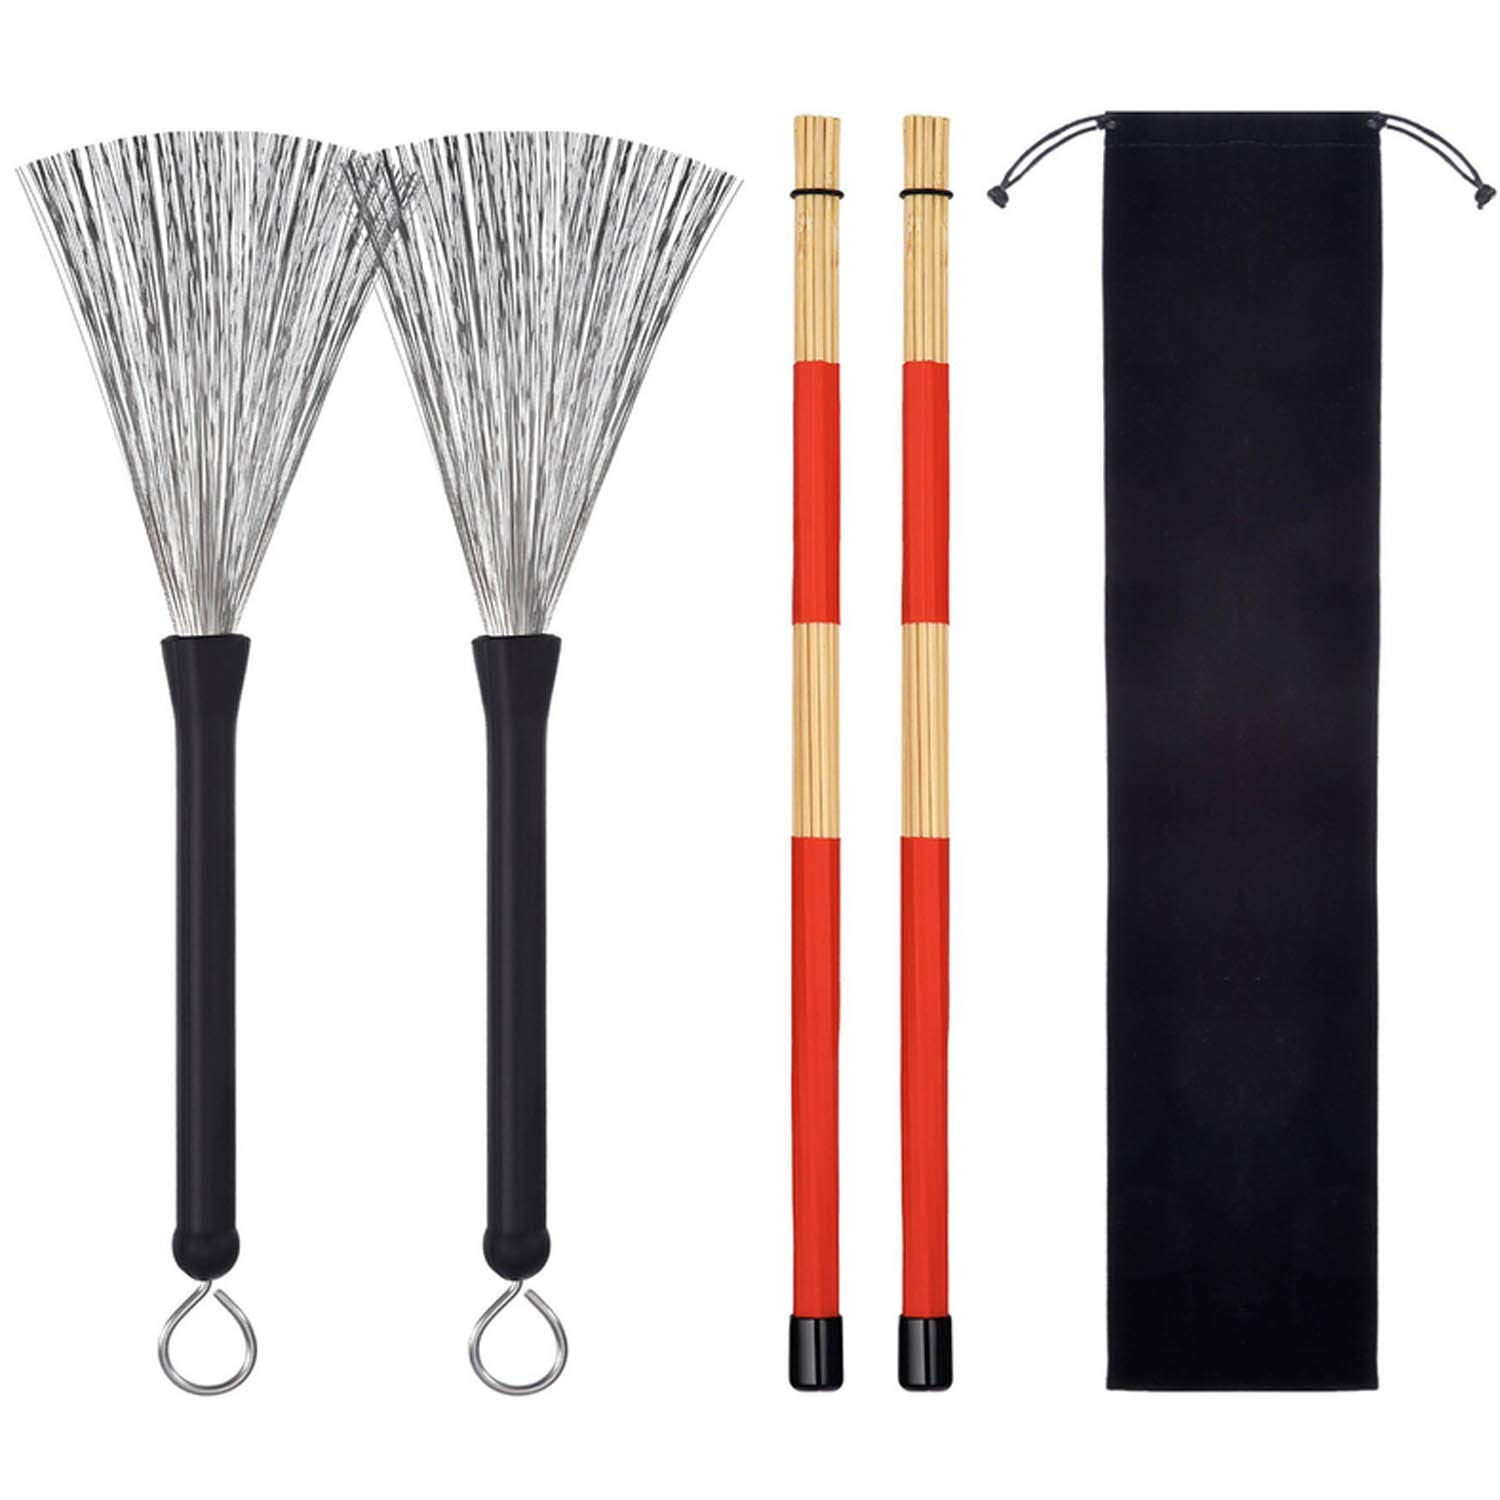 1 Pair Drum Wire Brushes + 1 Pair Rods Drum Brushes + 1pcs Storage Bag for Jazz Acoustic Music Lover Gifts Migavan M433250029